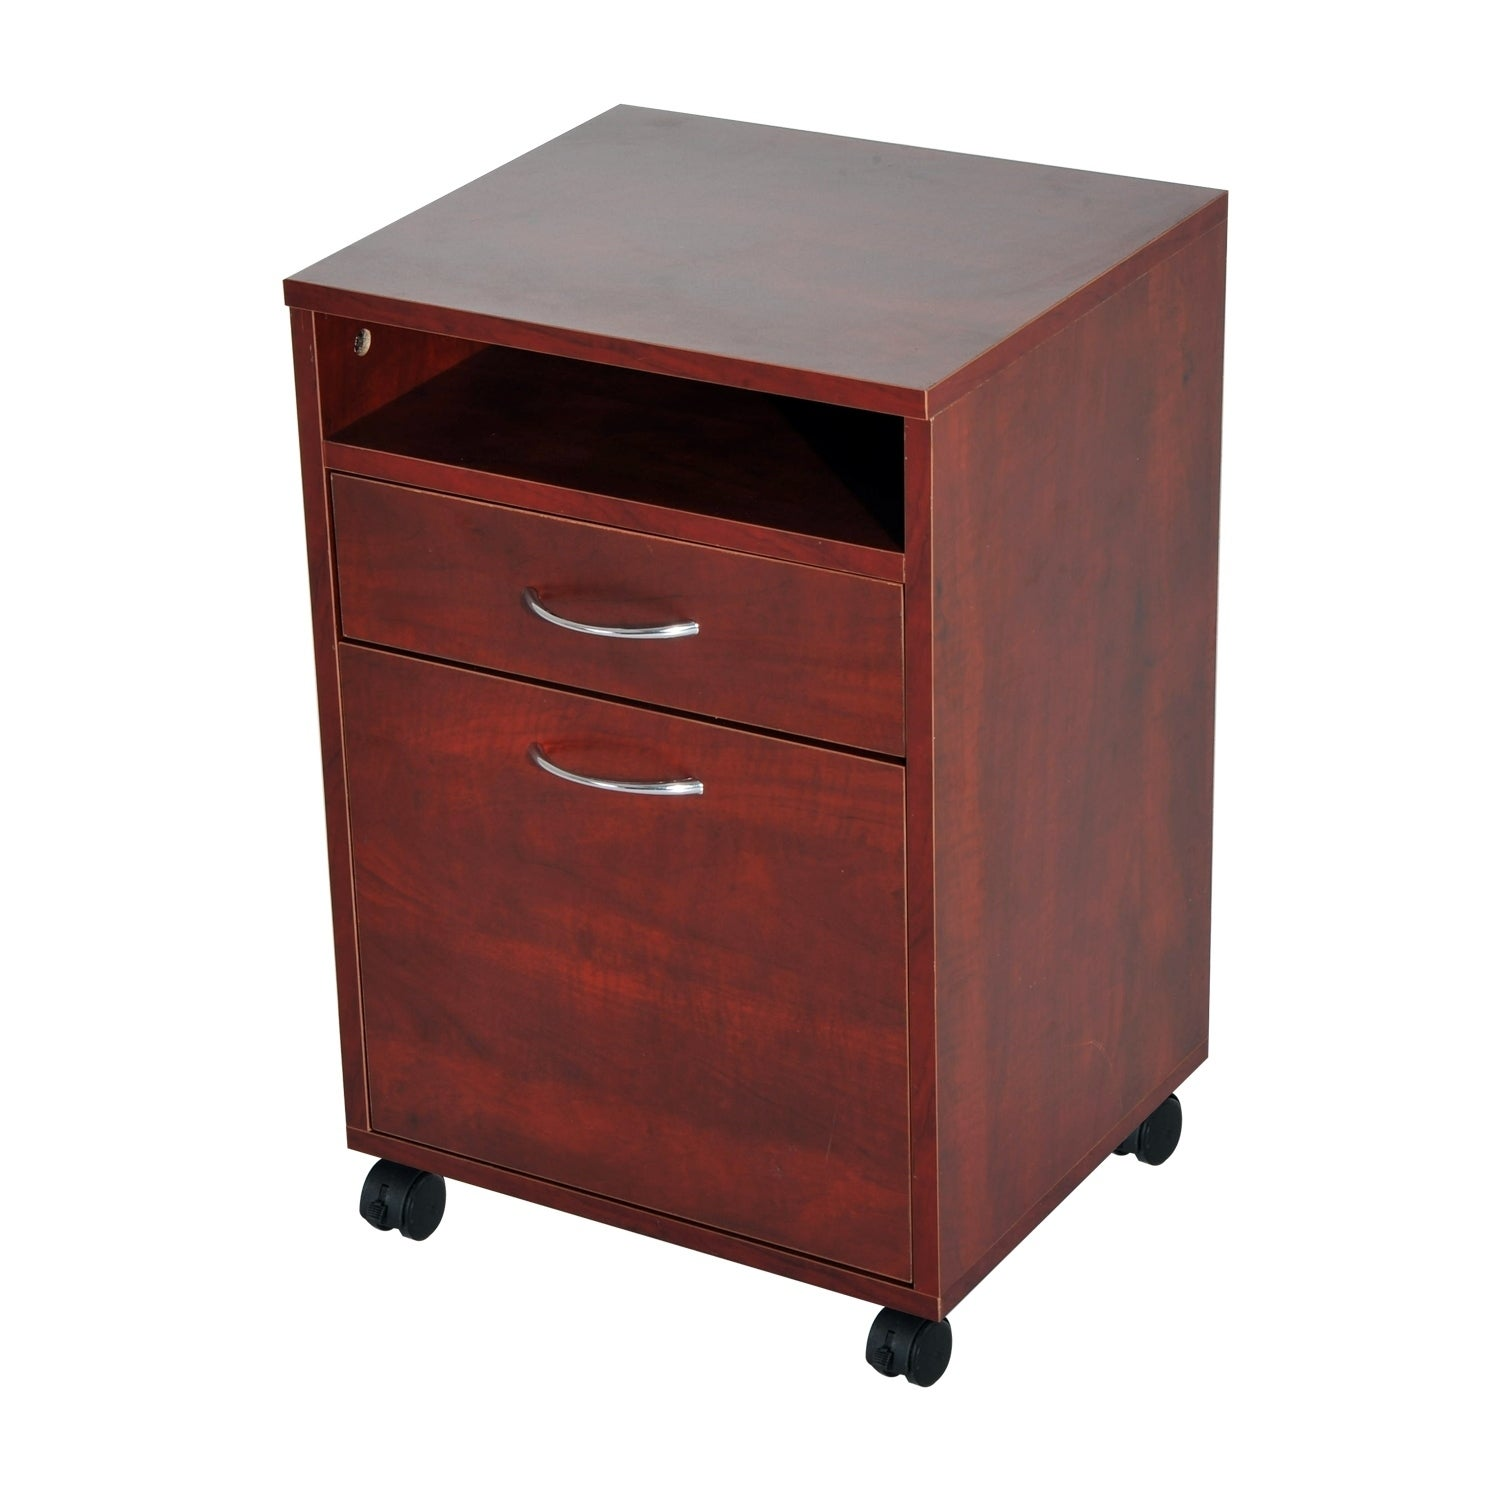 Details about  /HomCom 24  Rolling End Table Mobile Printer Cart Nightstand Organizer Black